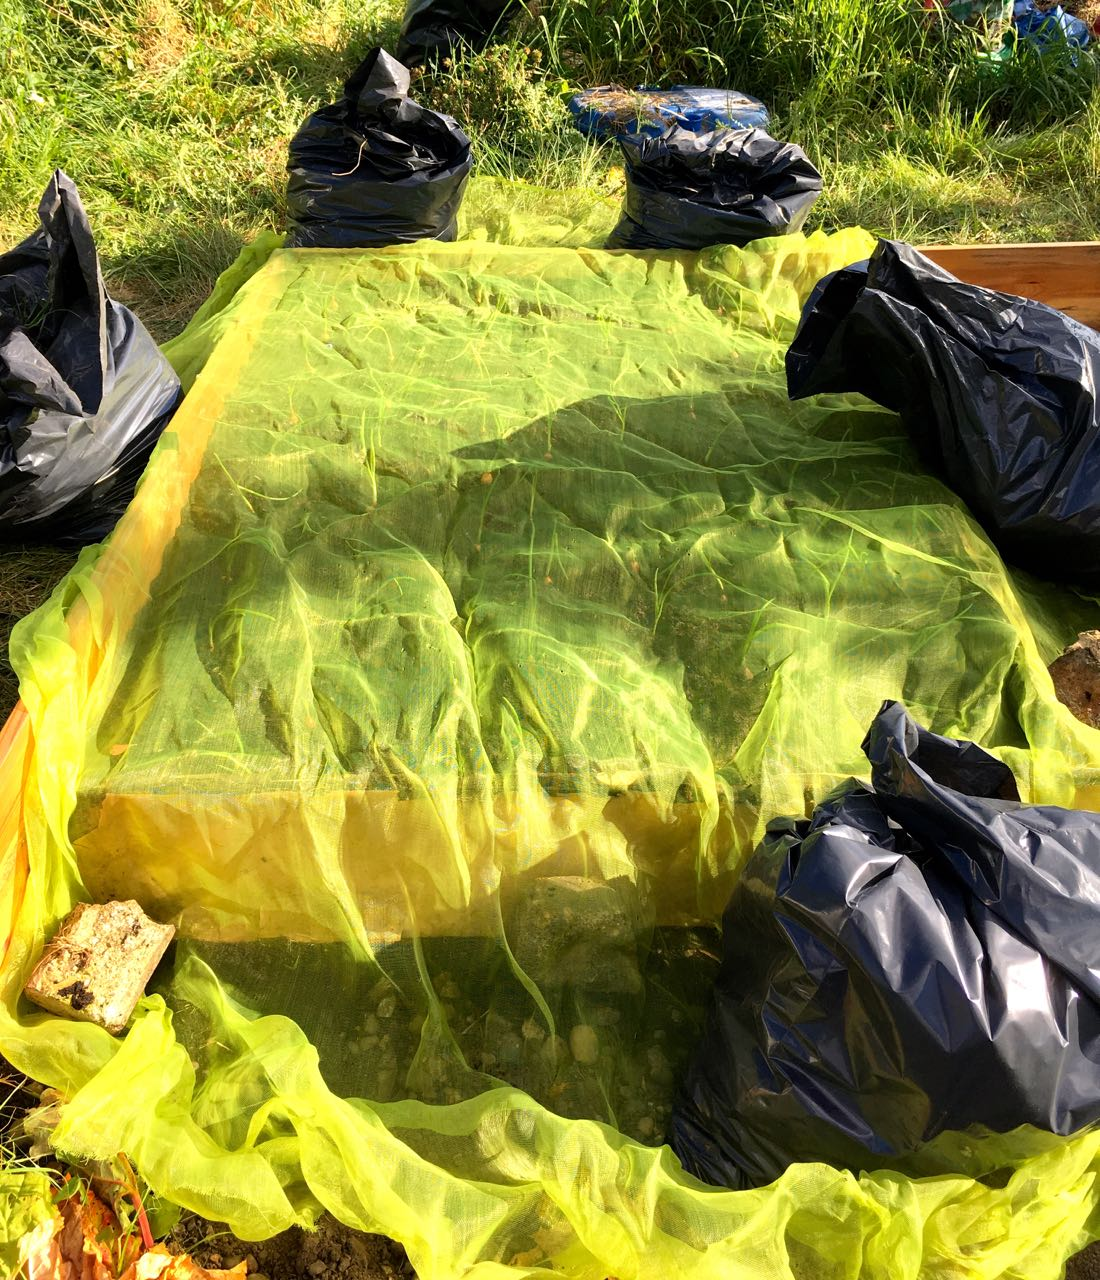 USING THE BLACK SACKS FULL OF WEEDS AS WEIGHTS FOR OUR NETTING